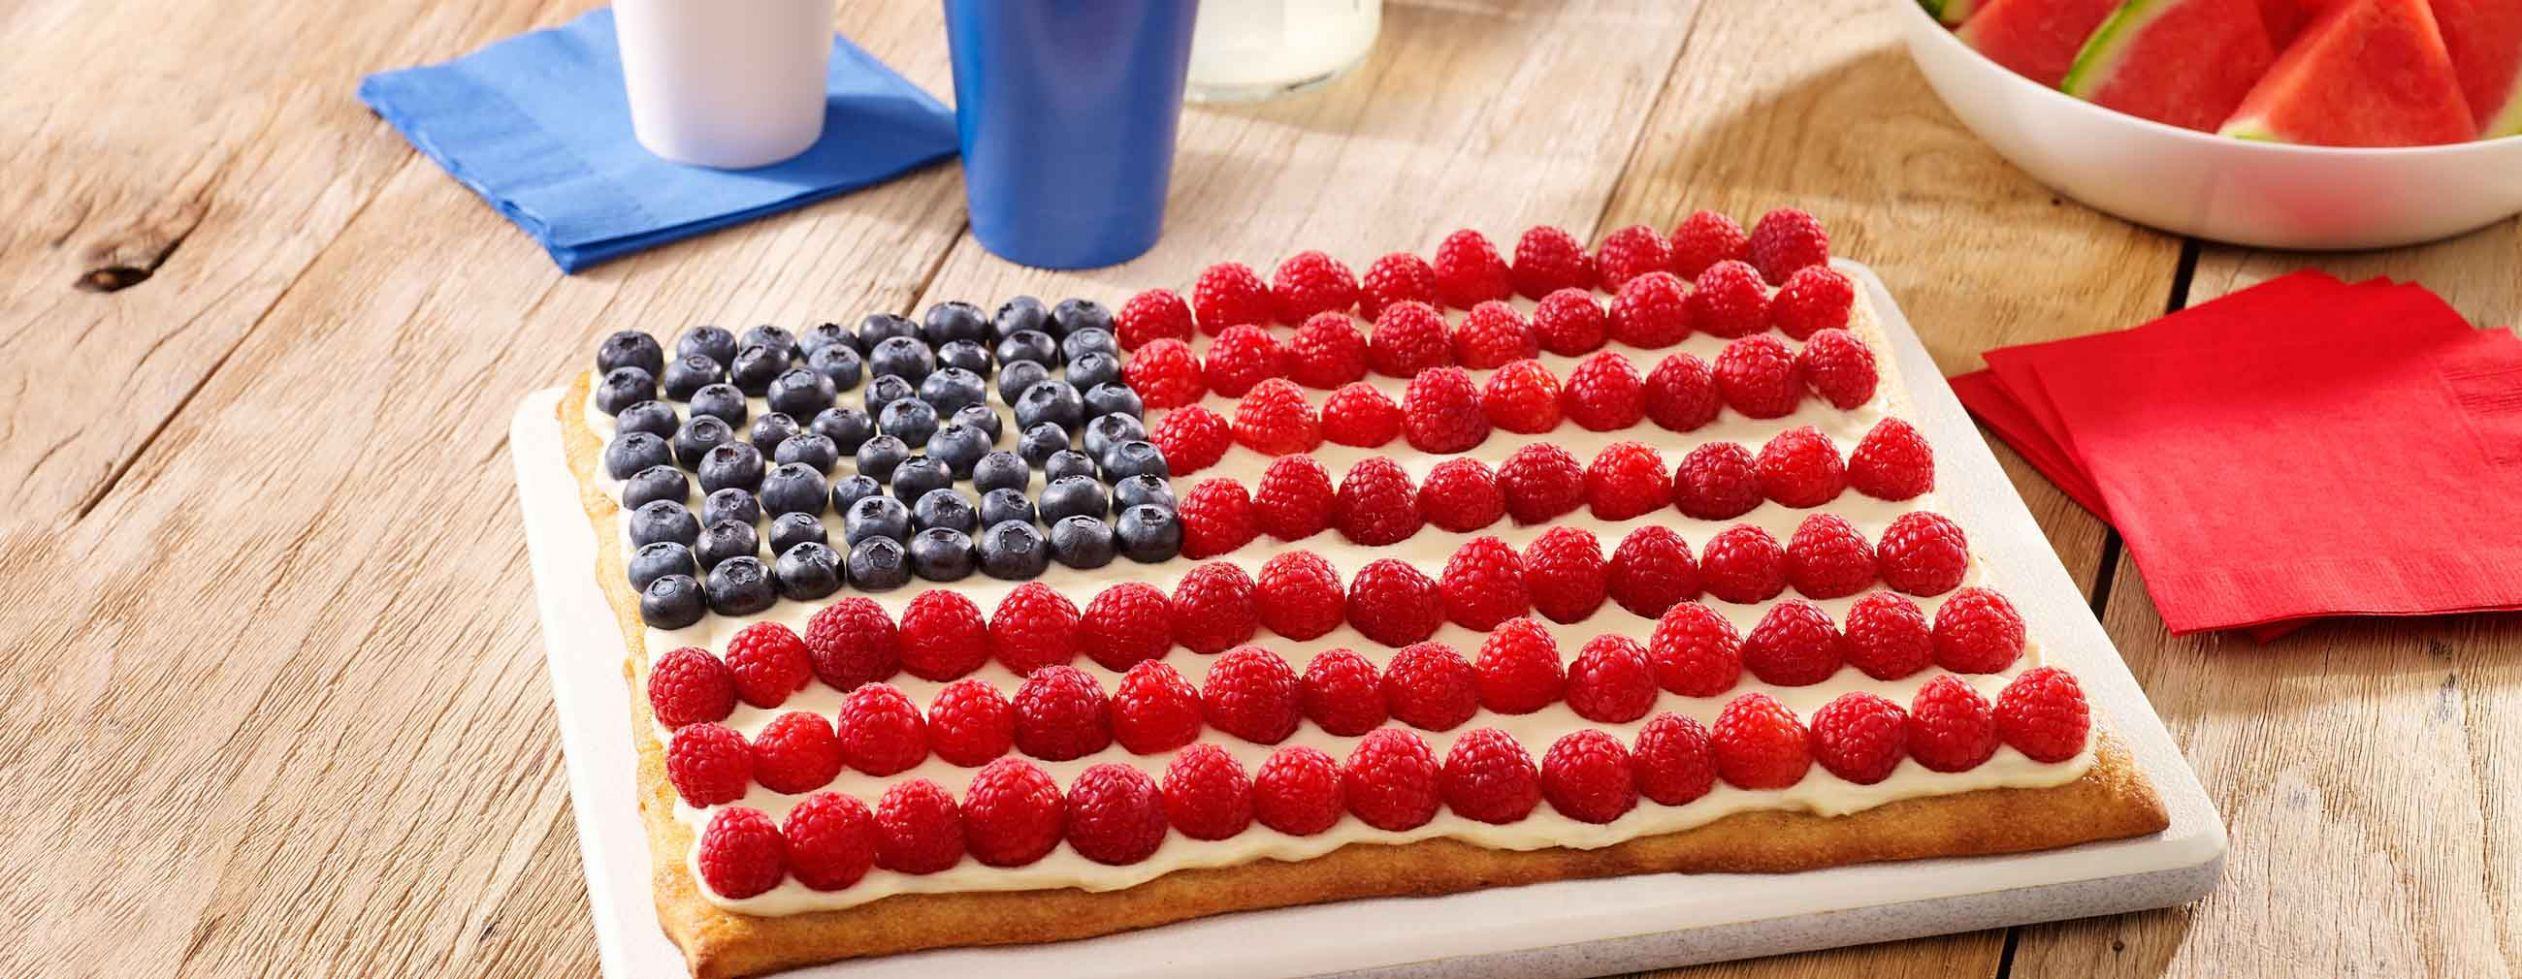 Red White and Blue Dessert Fruit Pizza - Dessert Recipes Red White Blue